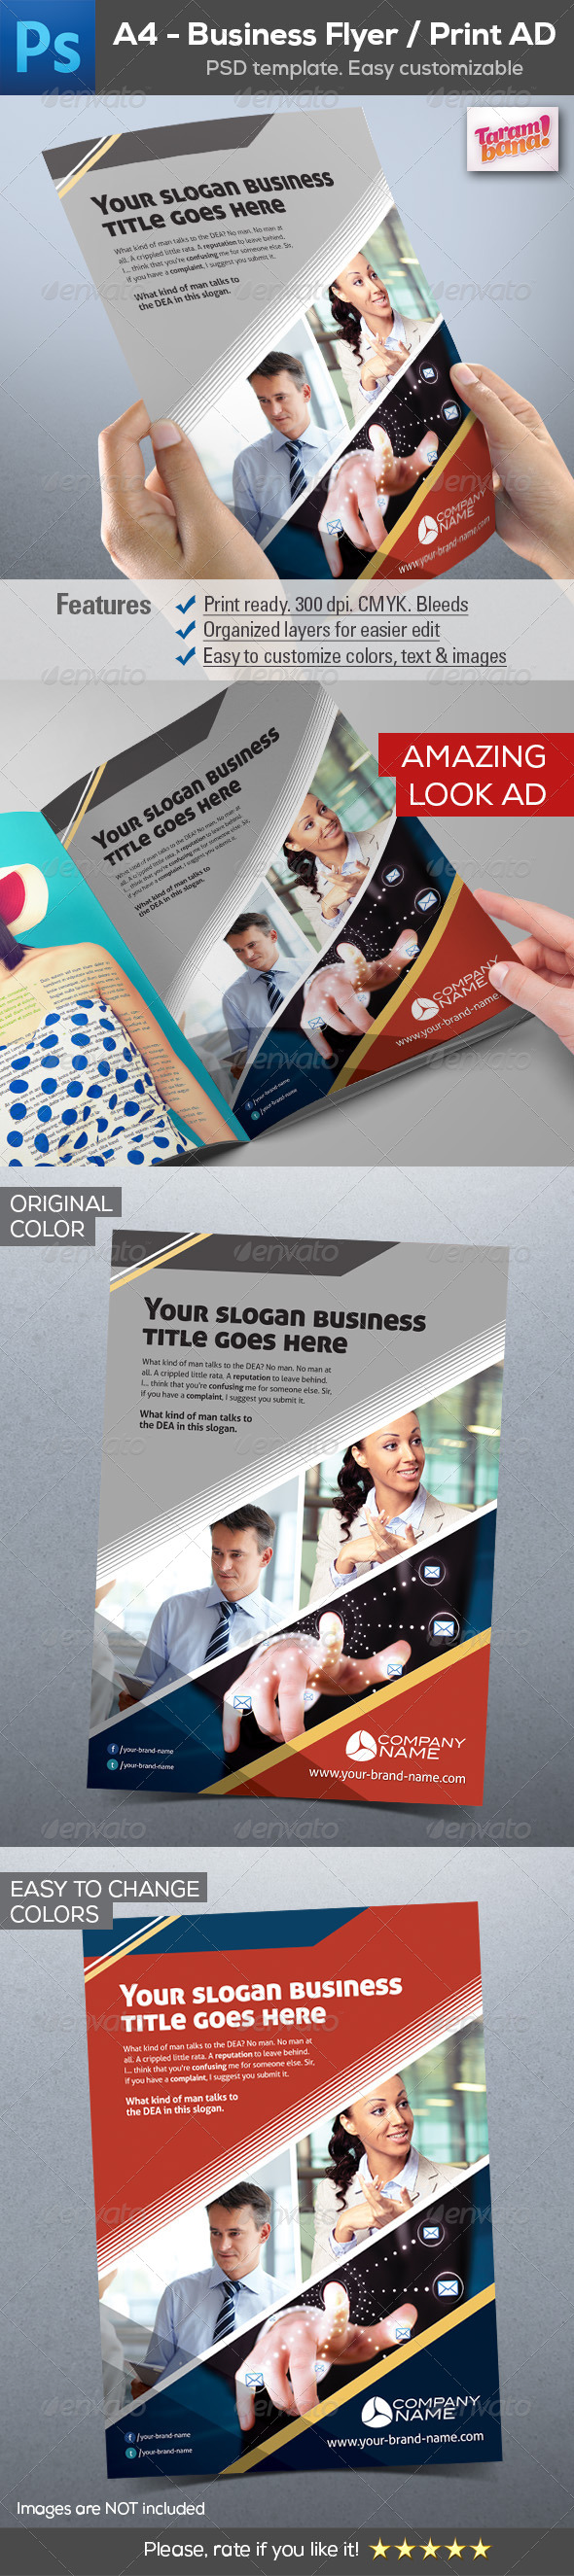 GraphicRiver Business Flyer Print AD Template 8628415